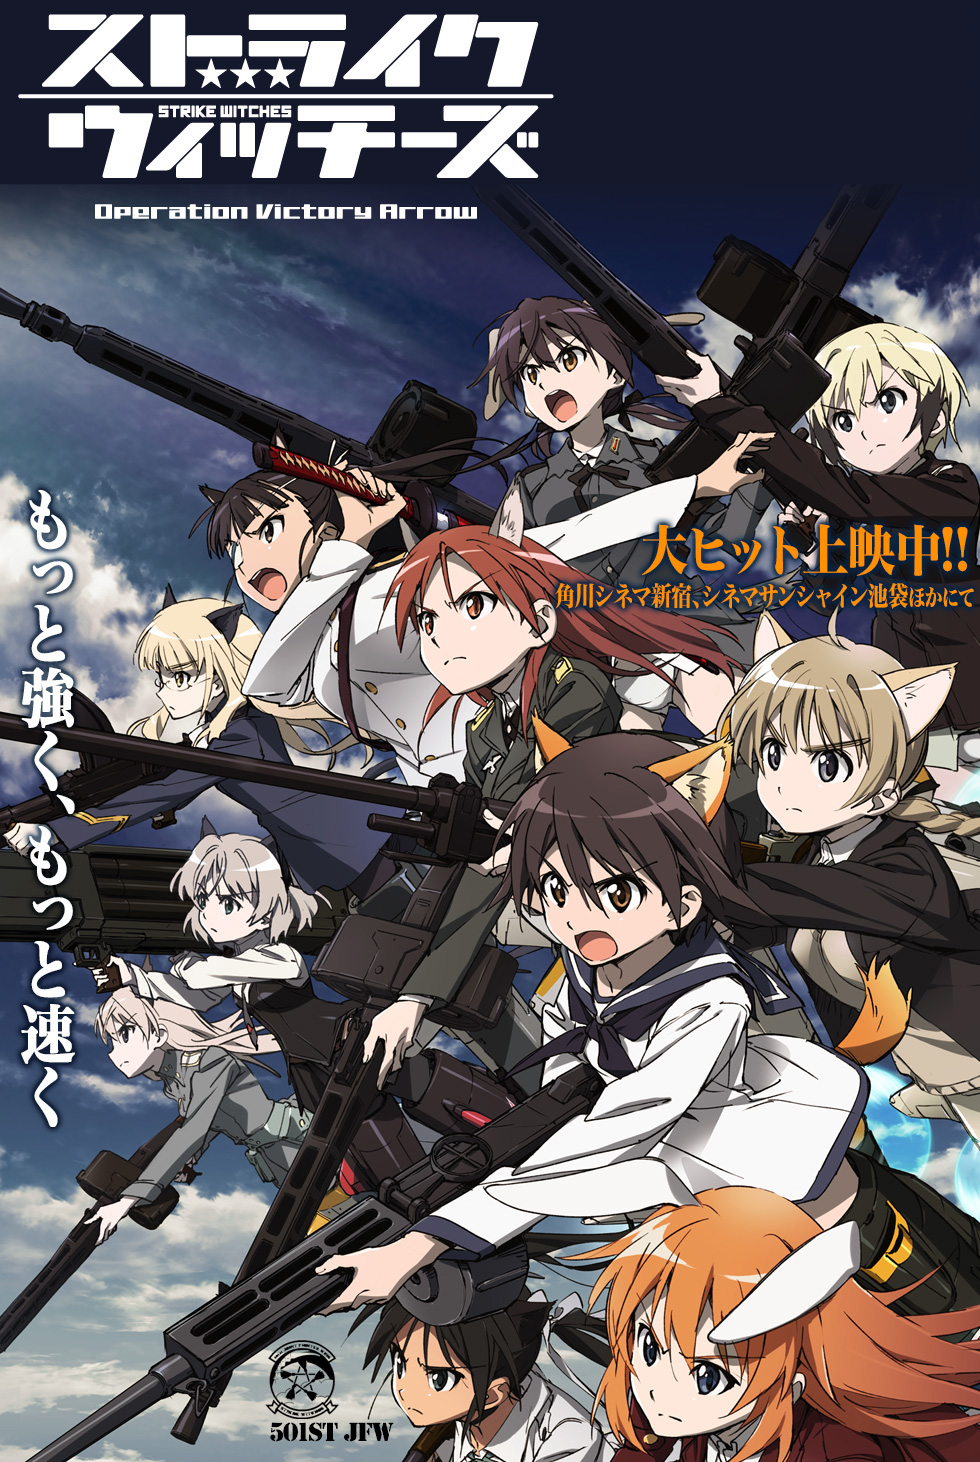 Strike-Witches-Operation-Victory-Arrow-Vol-Anime-Visual